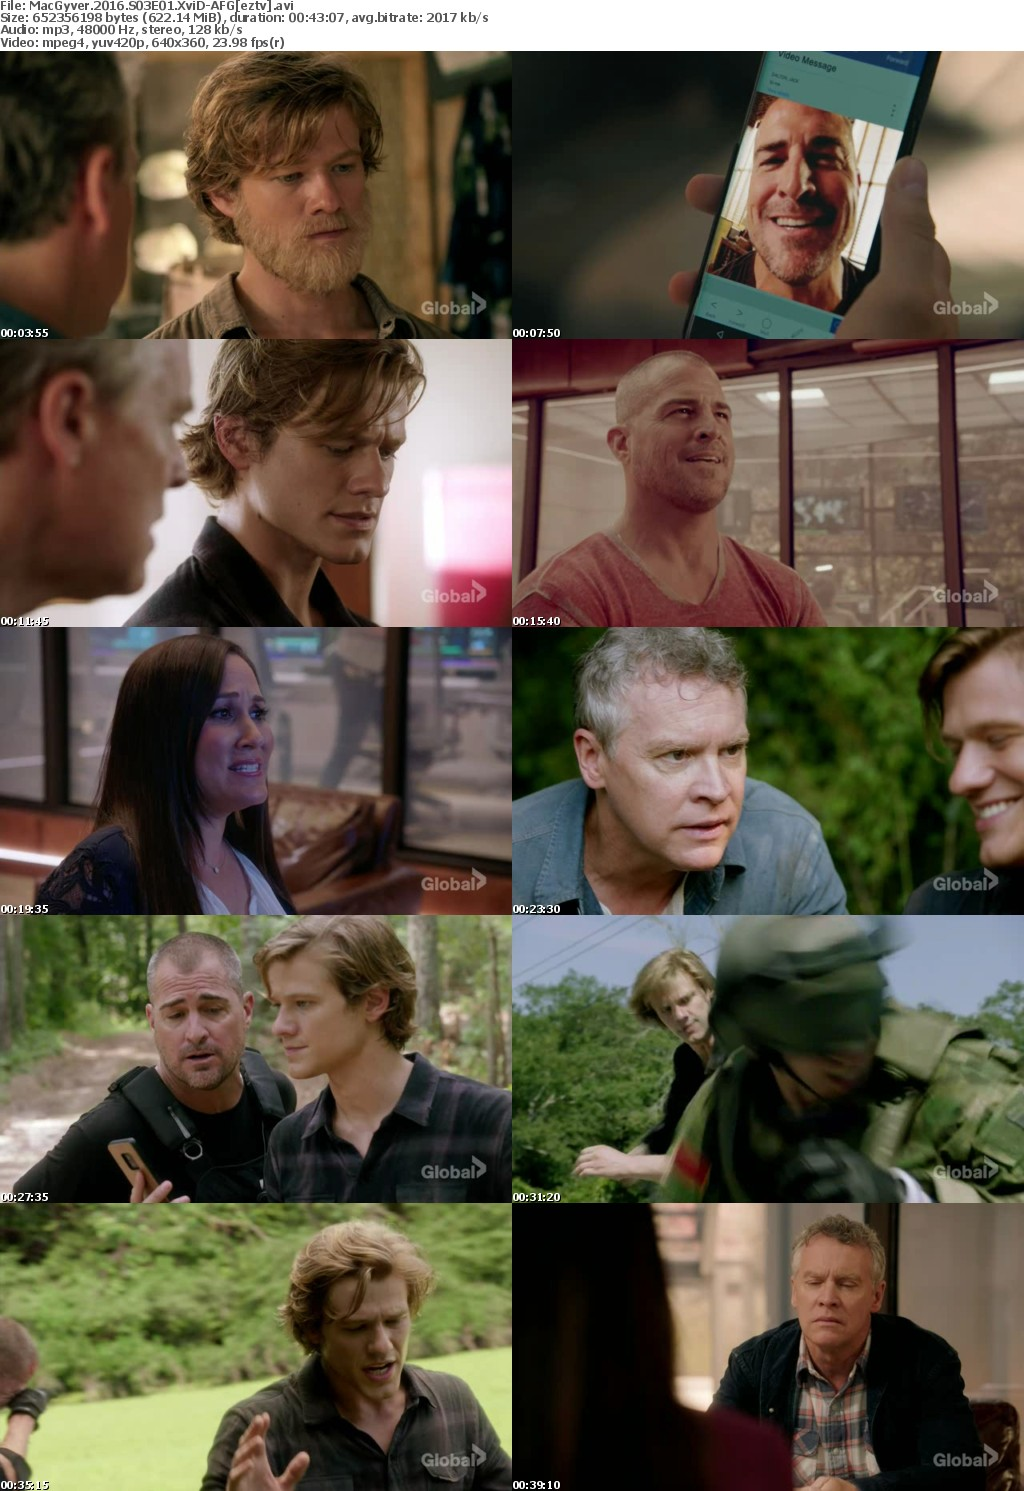 MacGyver (2016) S03E01 XviD-AFG